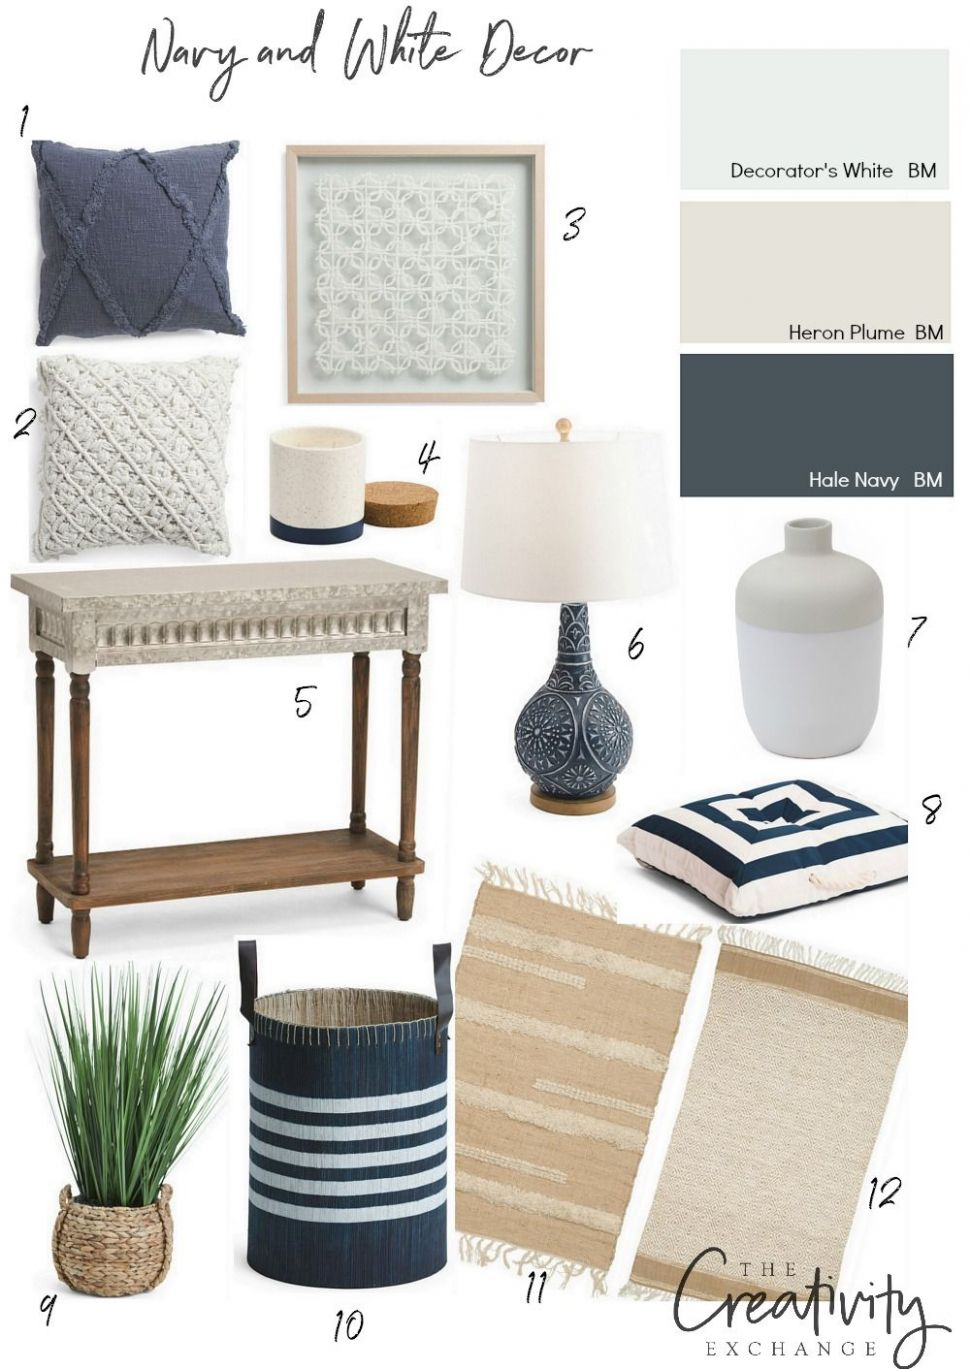 Knock Off Home Decor Deals: Moody Monday | Home decor styles, Home ...